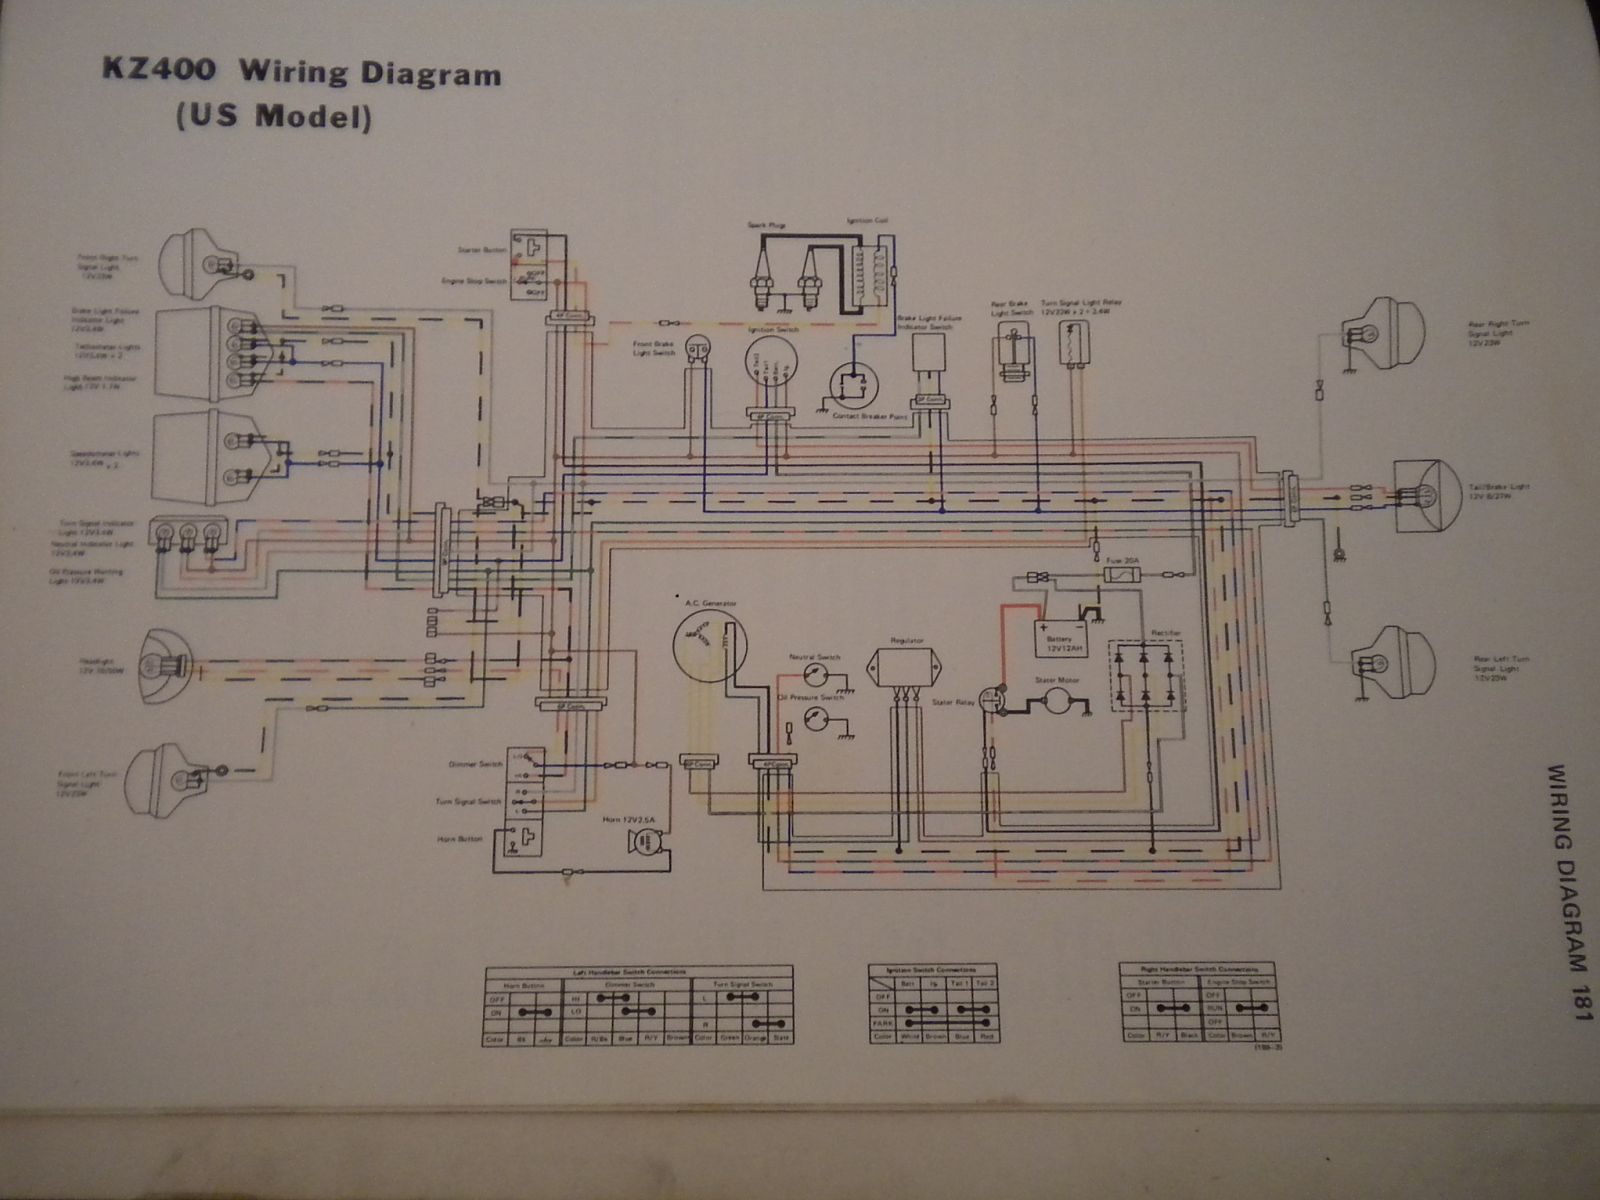 1981 cb750 wiring diagram how to read automotive electrical diagrams 81 kz440 get free image about